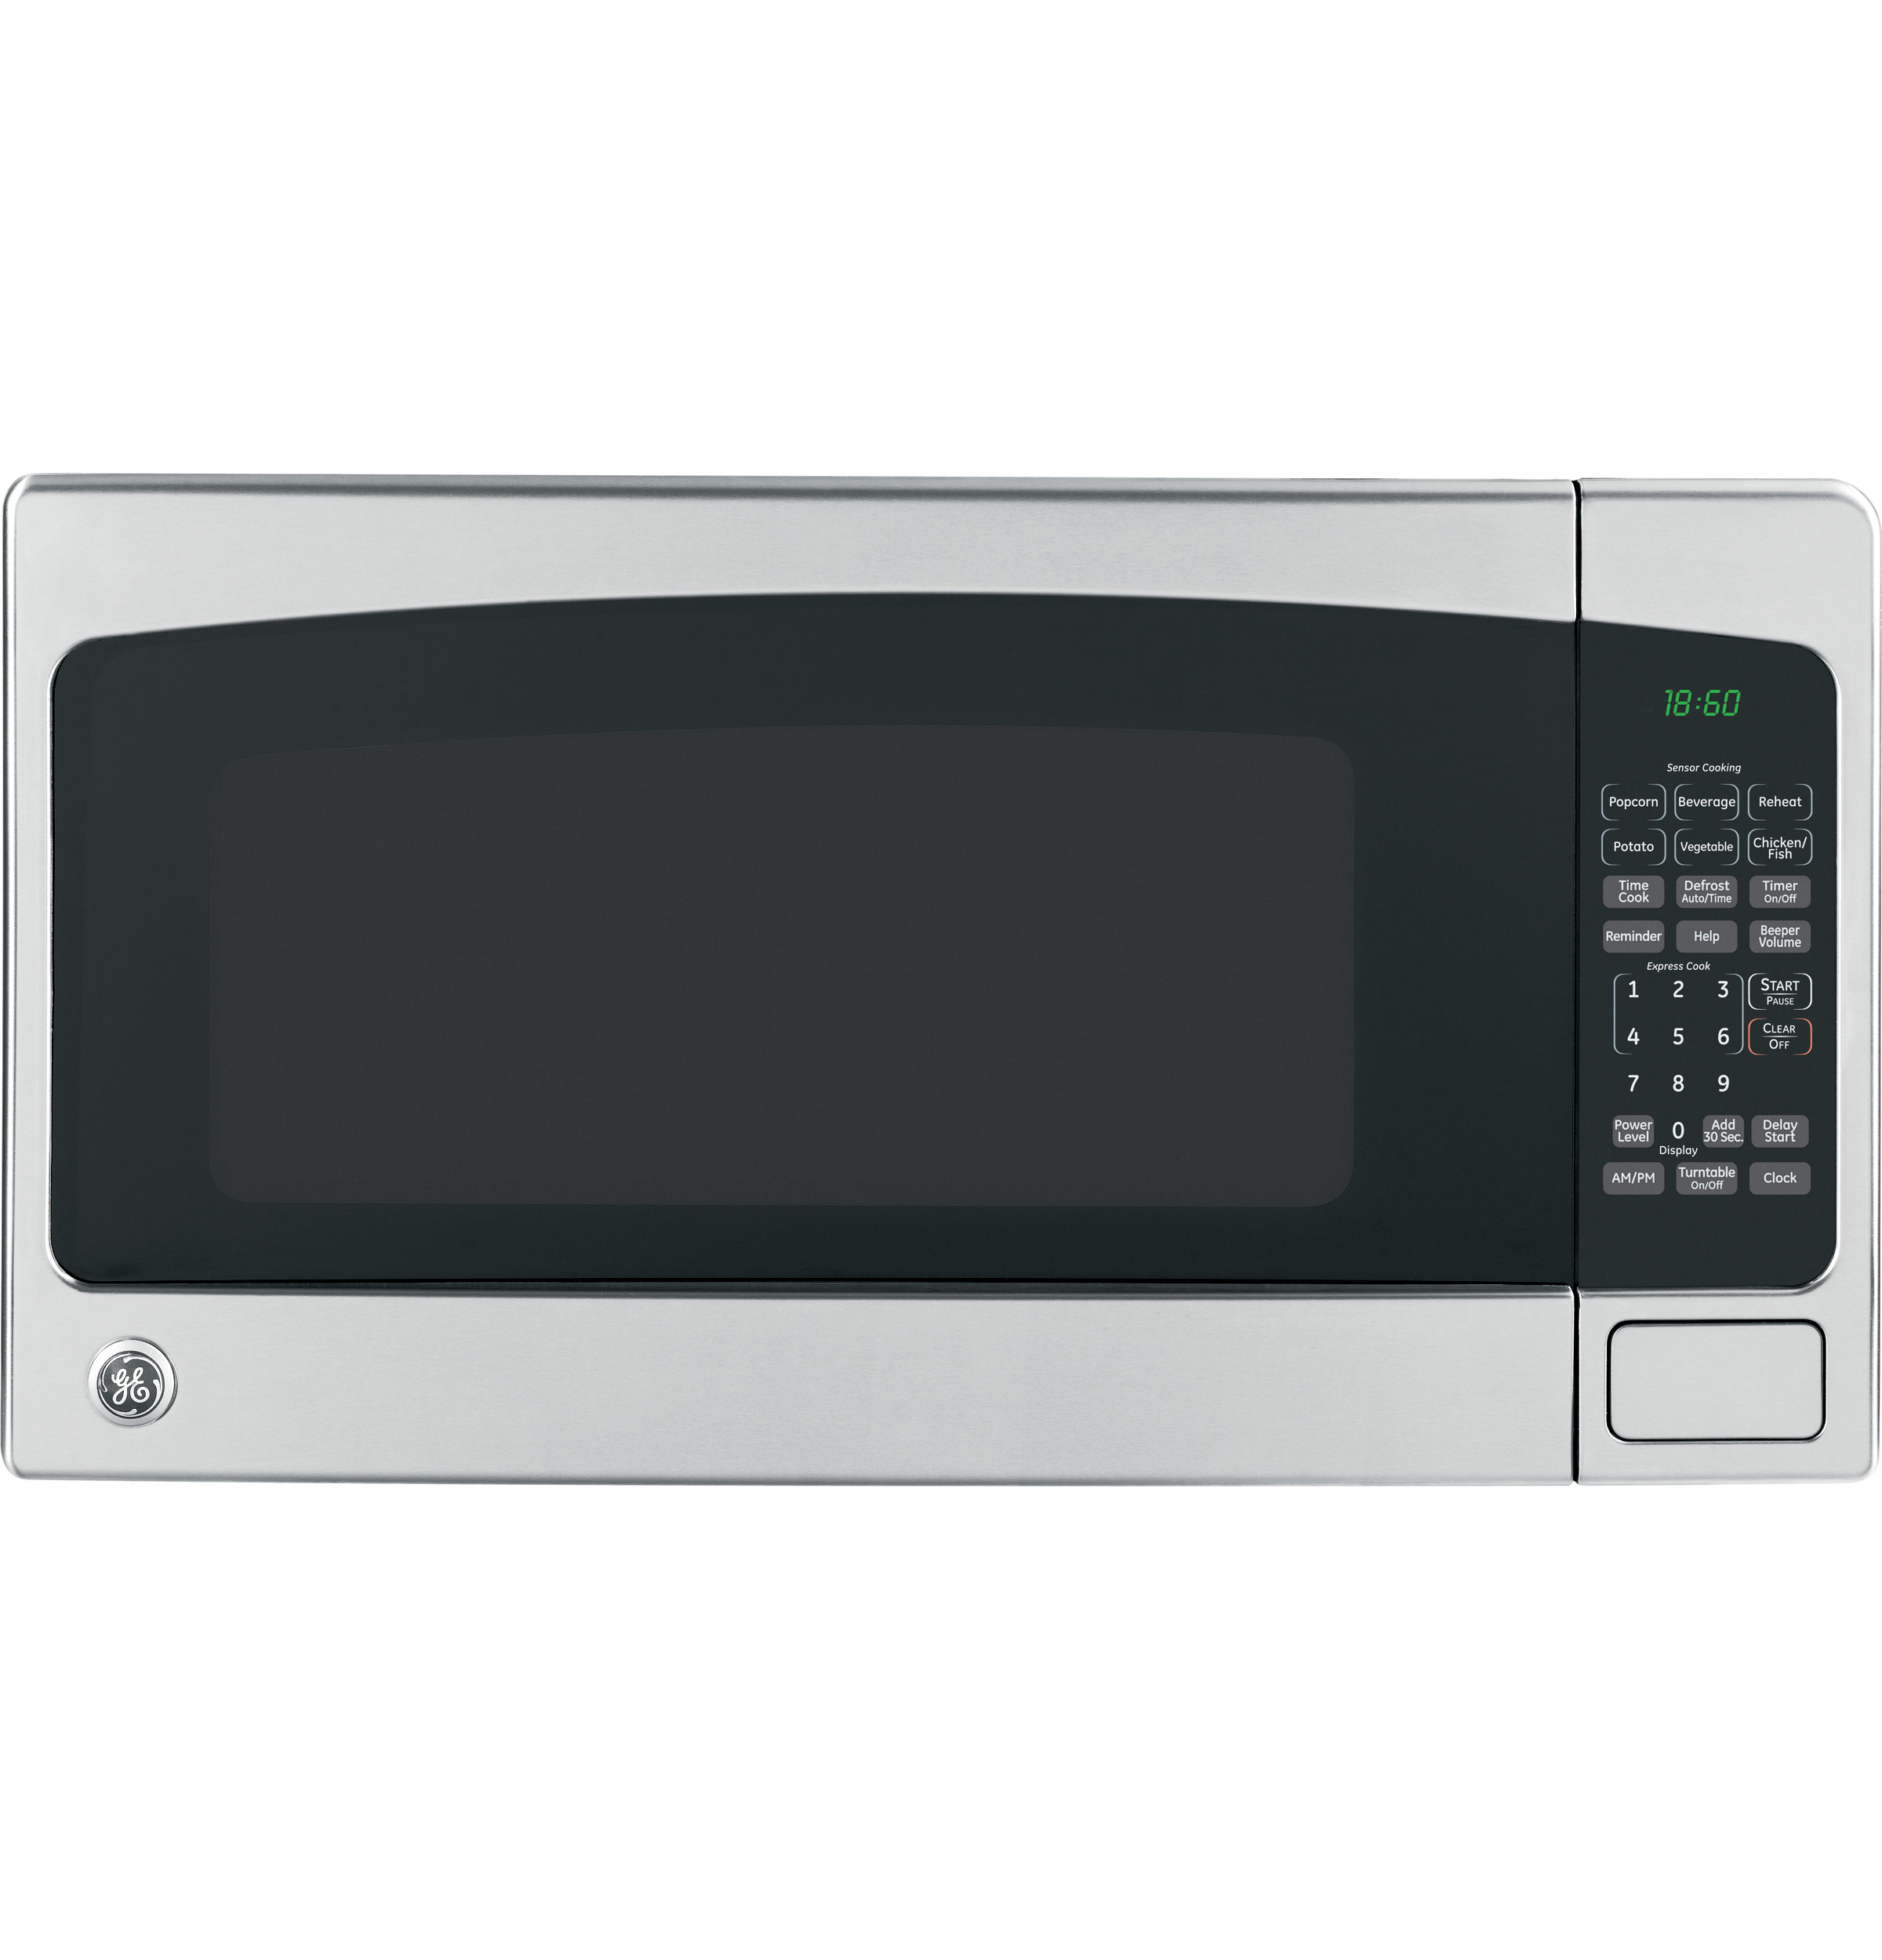 Countertop Microwave No Turntable : GE? 1.8 Cu. Ft. Countertop Microwave Oven JEB1860SMSS GE ...